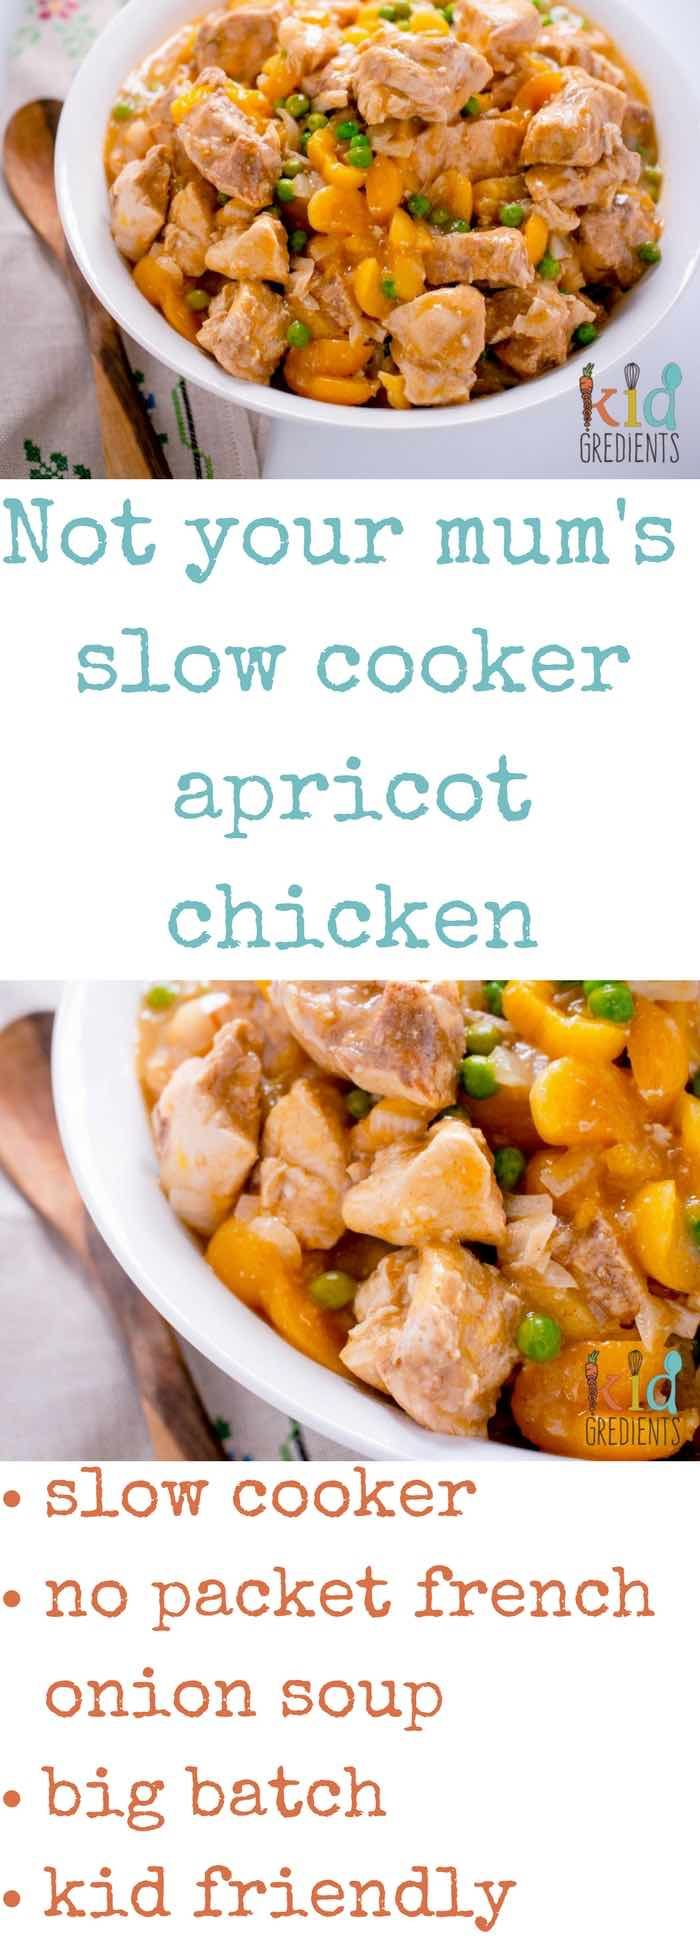 Not your mum's slow cooker apricot chicken, no packet mixes, no yucky stuff.  Just delicious slow cooker apricot chicken the whole family will love! via @kidgredients